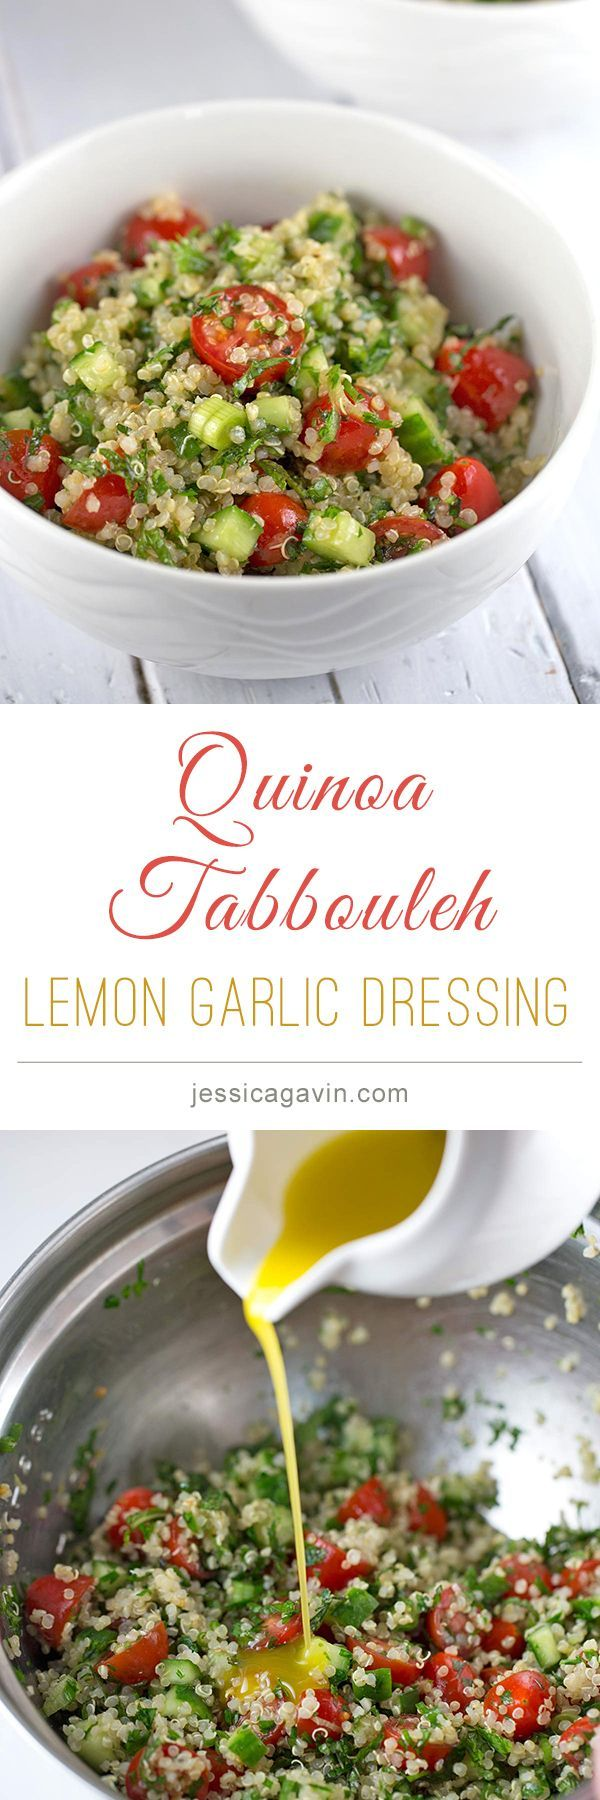 Healthy and delicious. Quinoa Tabbouleh with lemon garlic dressing.